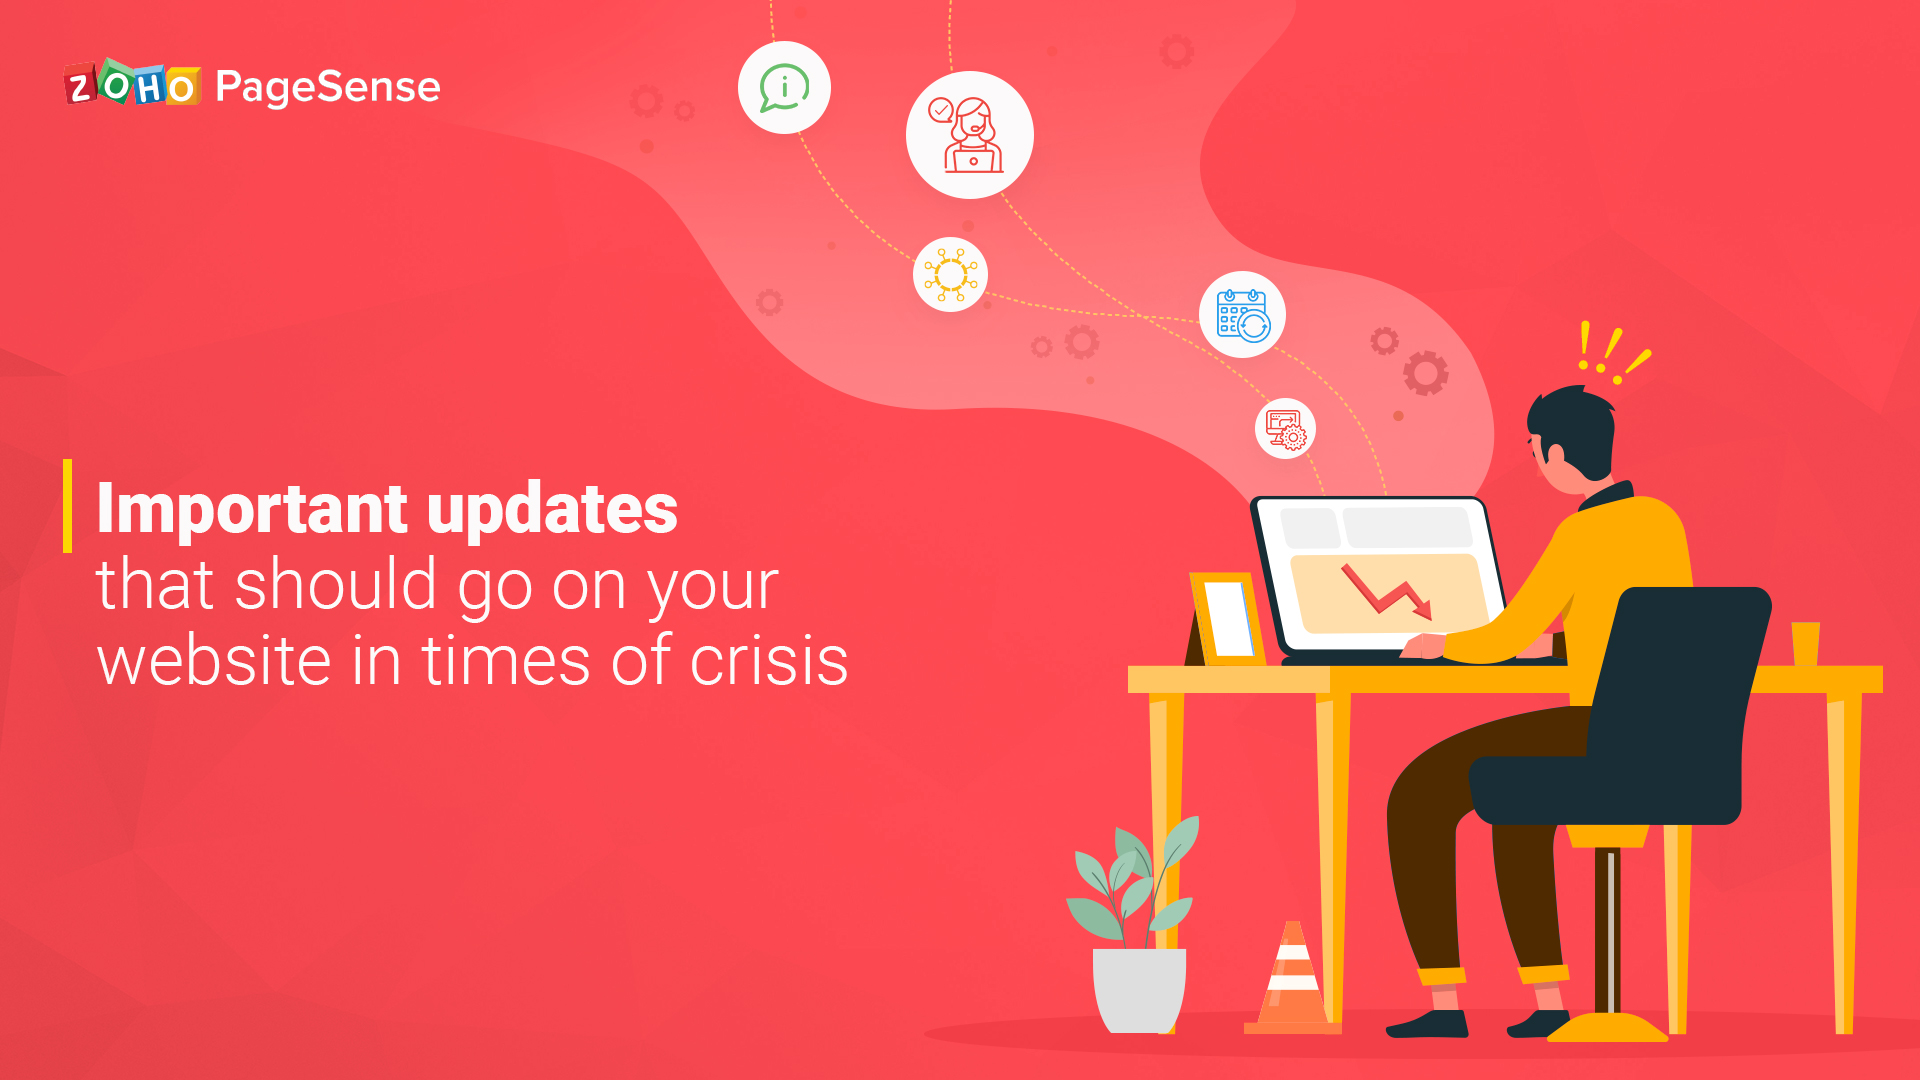 Important updates that should go on your website in times of crisis